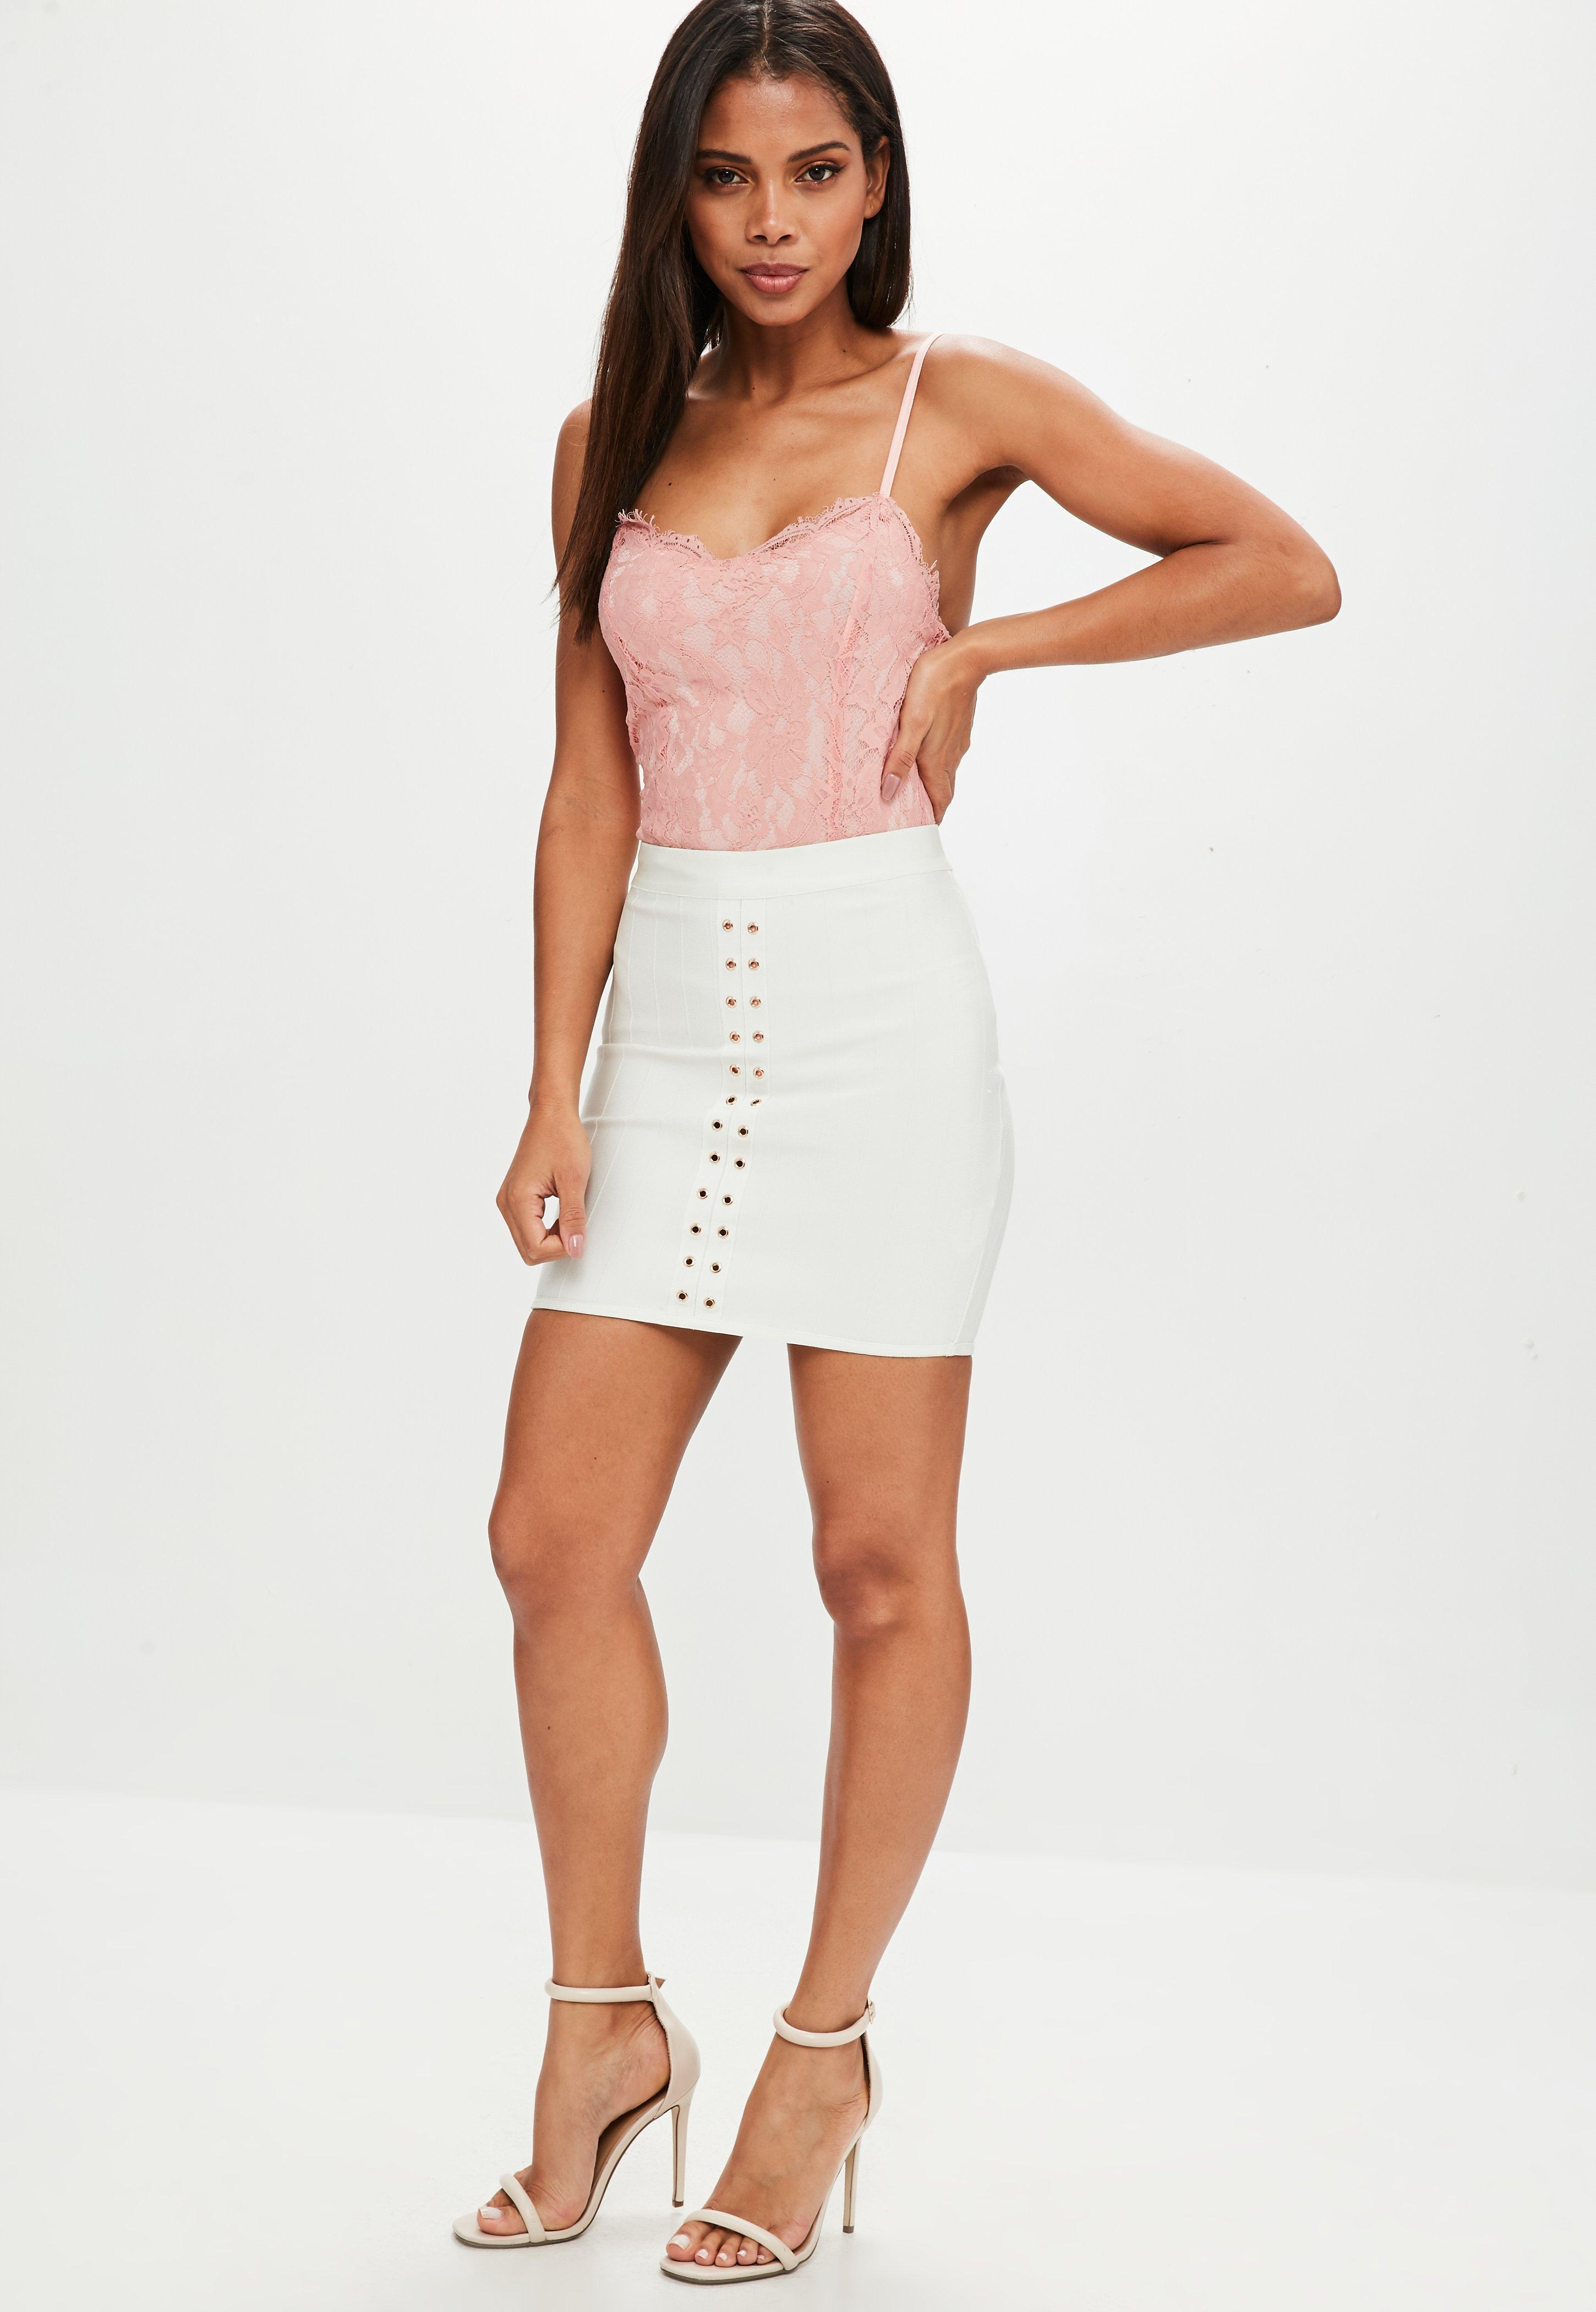 Lyst - Missguided Pink Lace Overlay Bodysuit in Pink